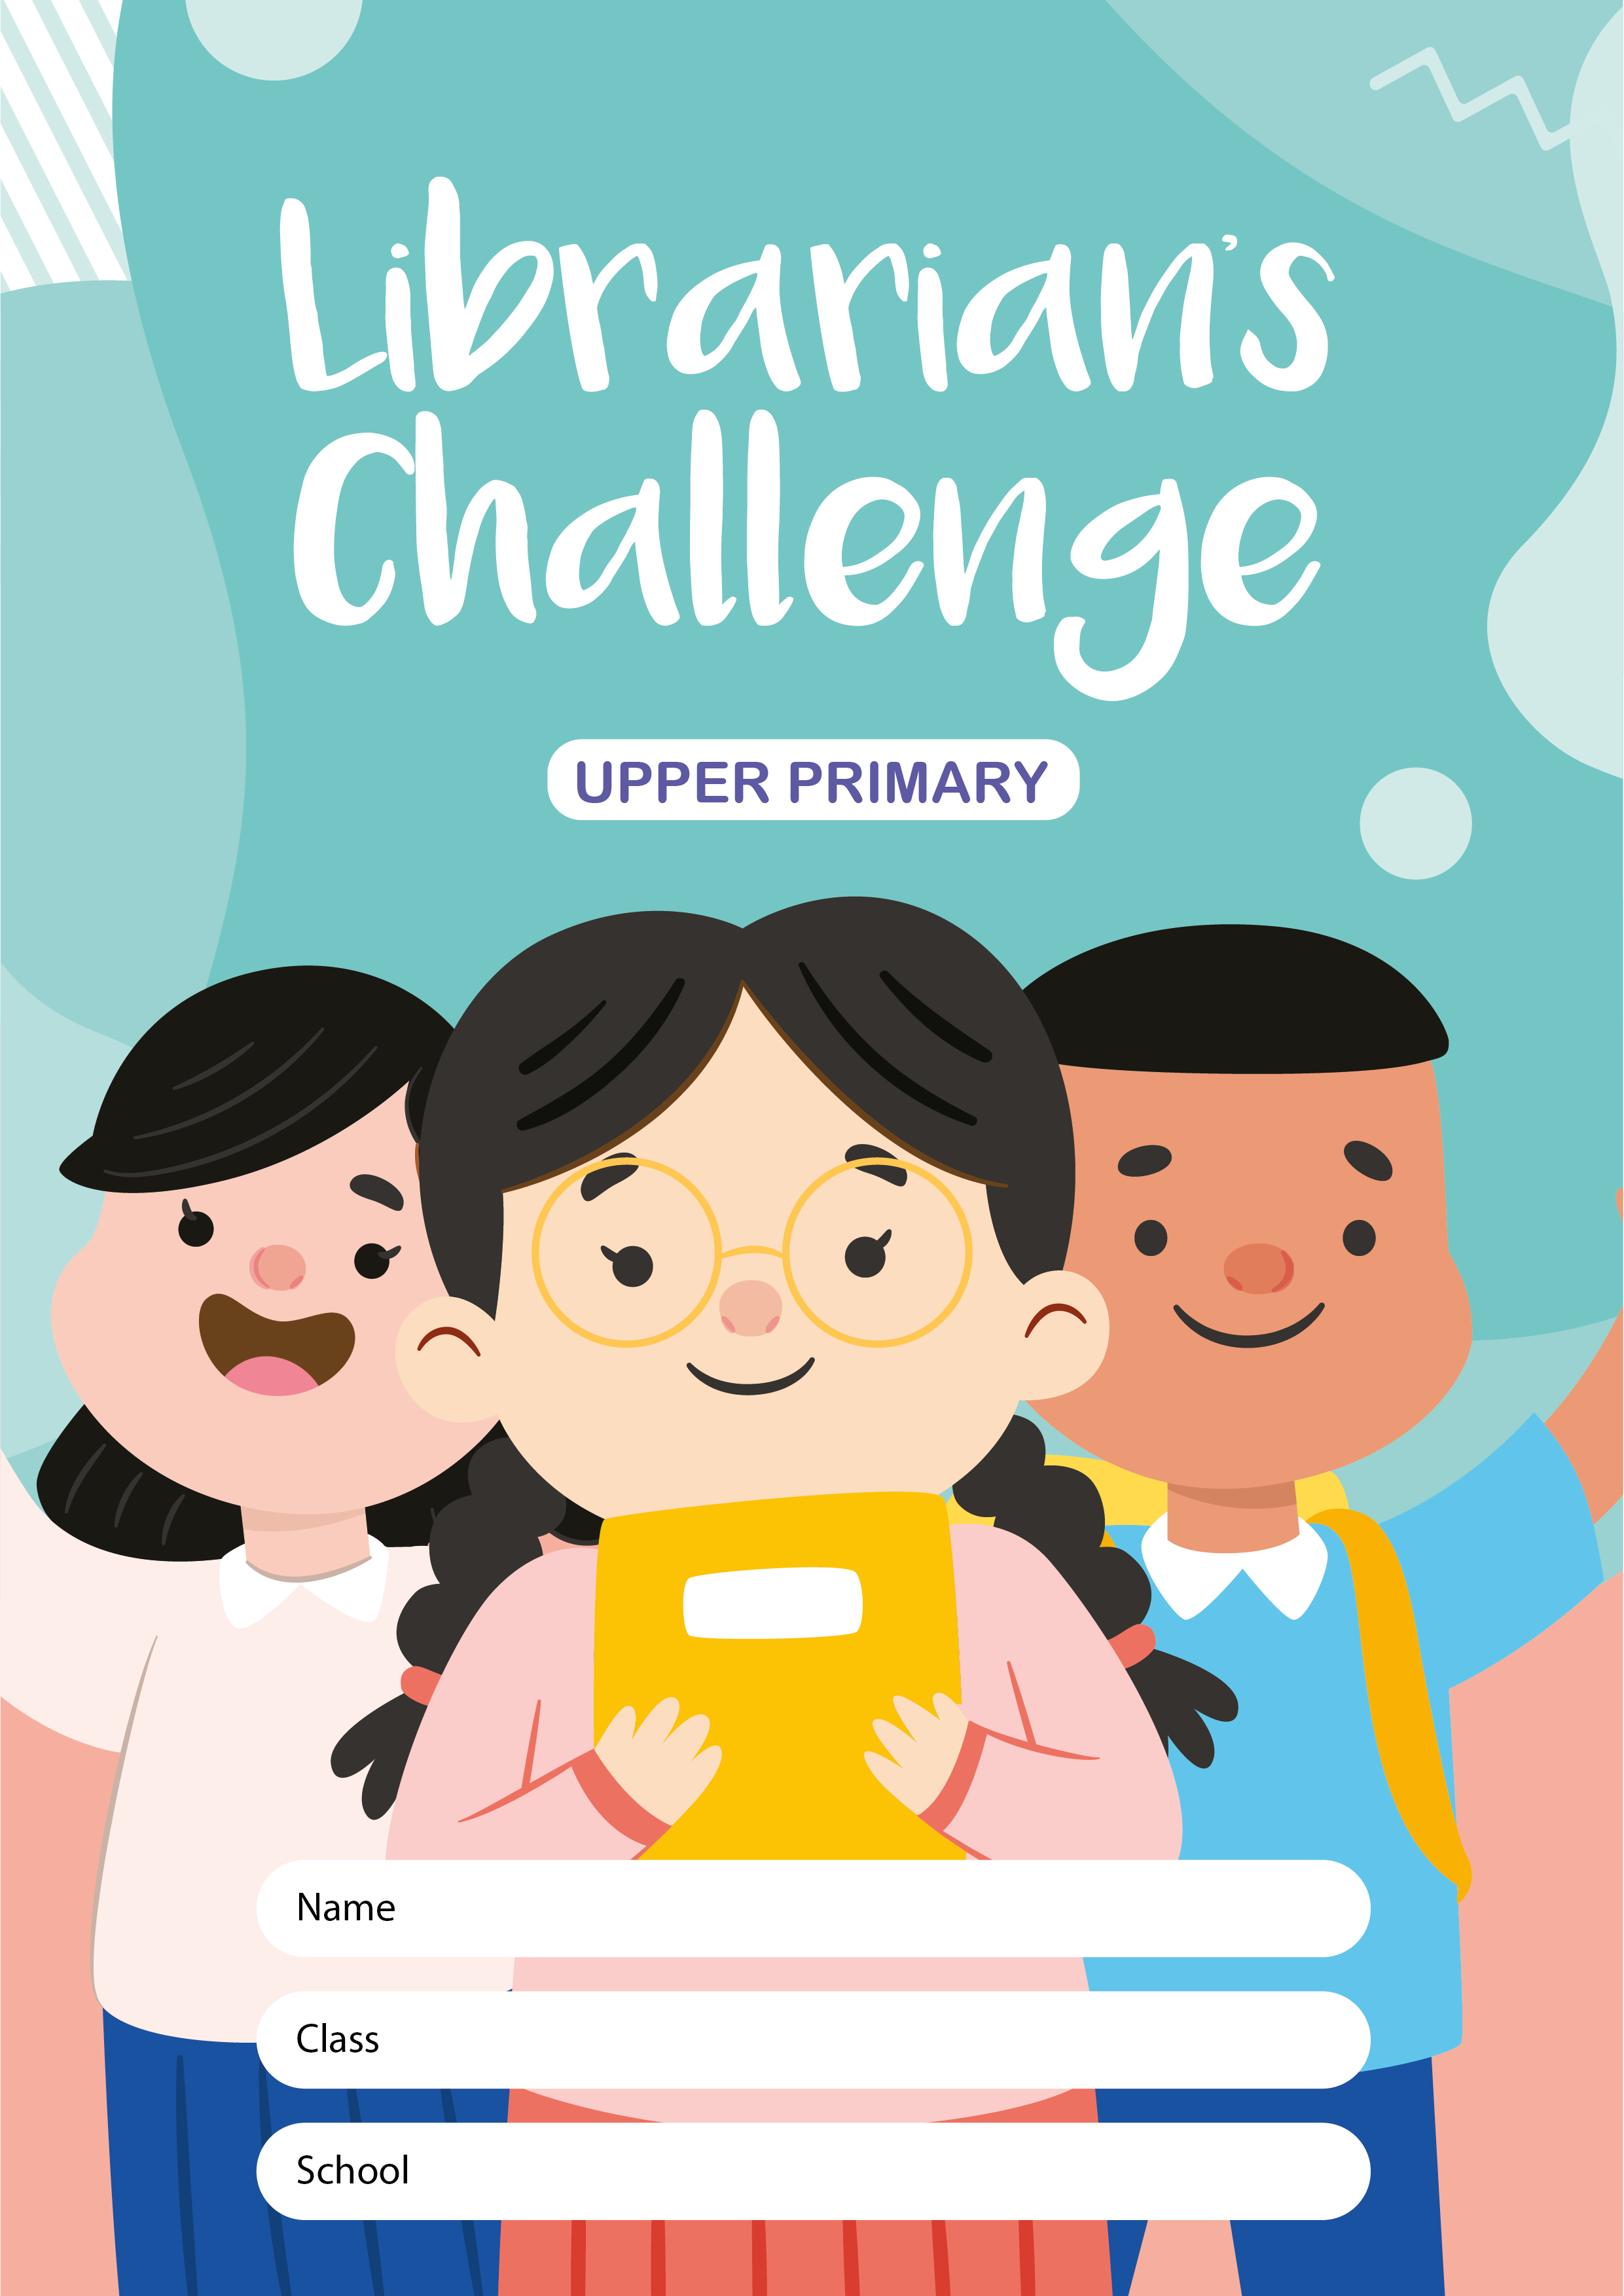 Upper Primary Librarian's Challenge 2021